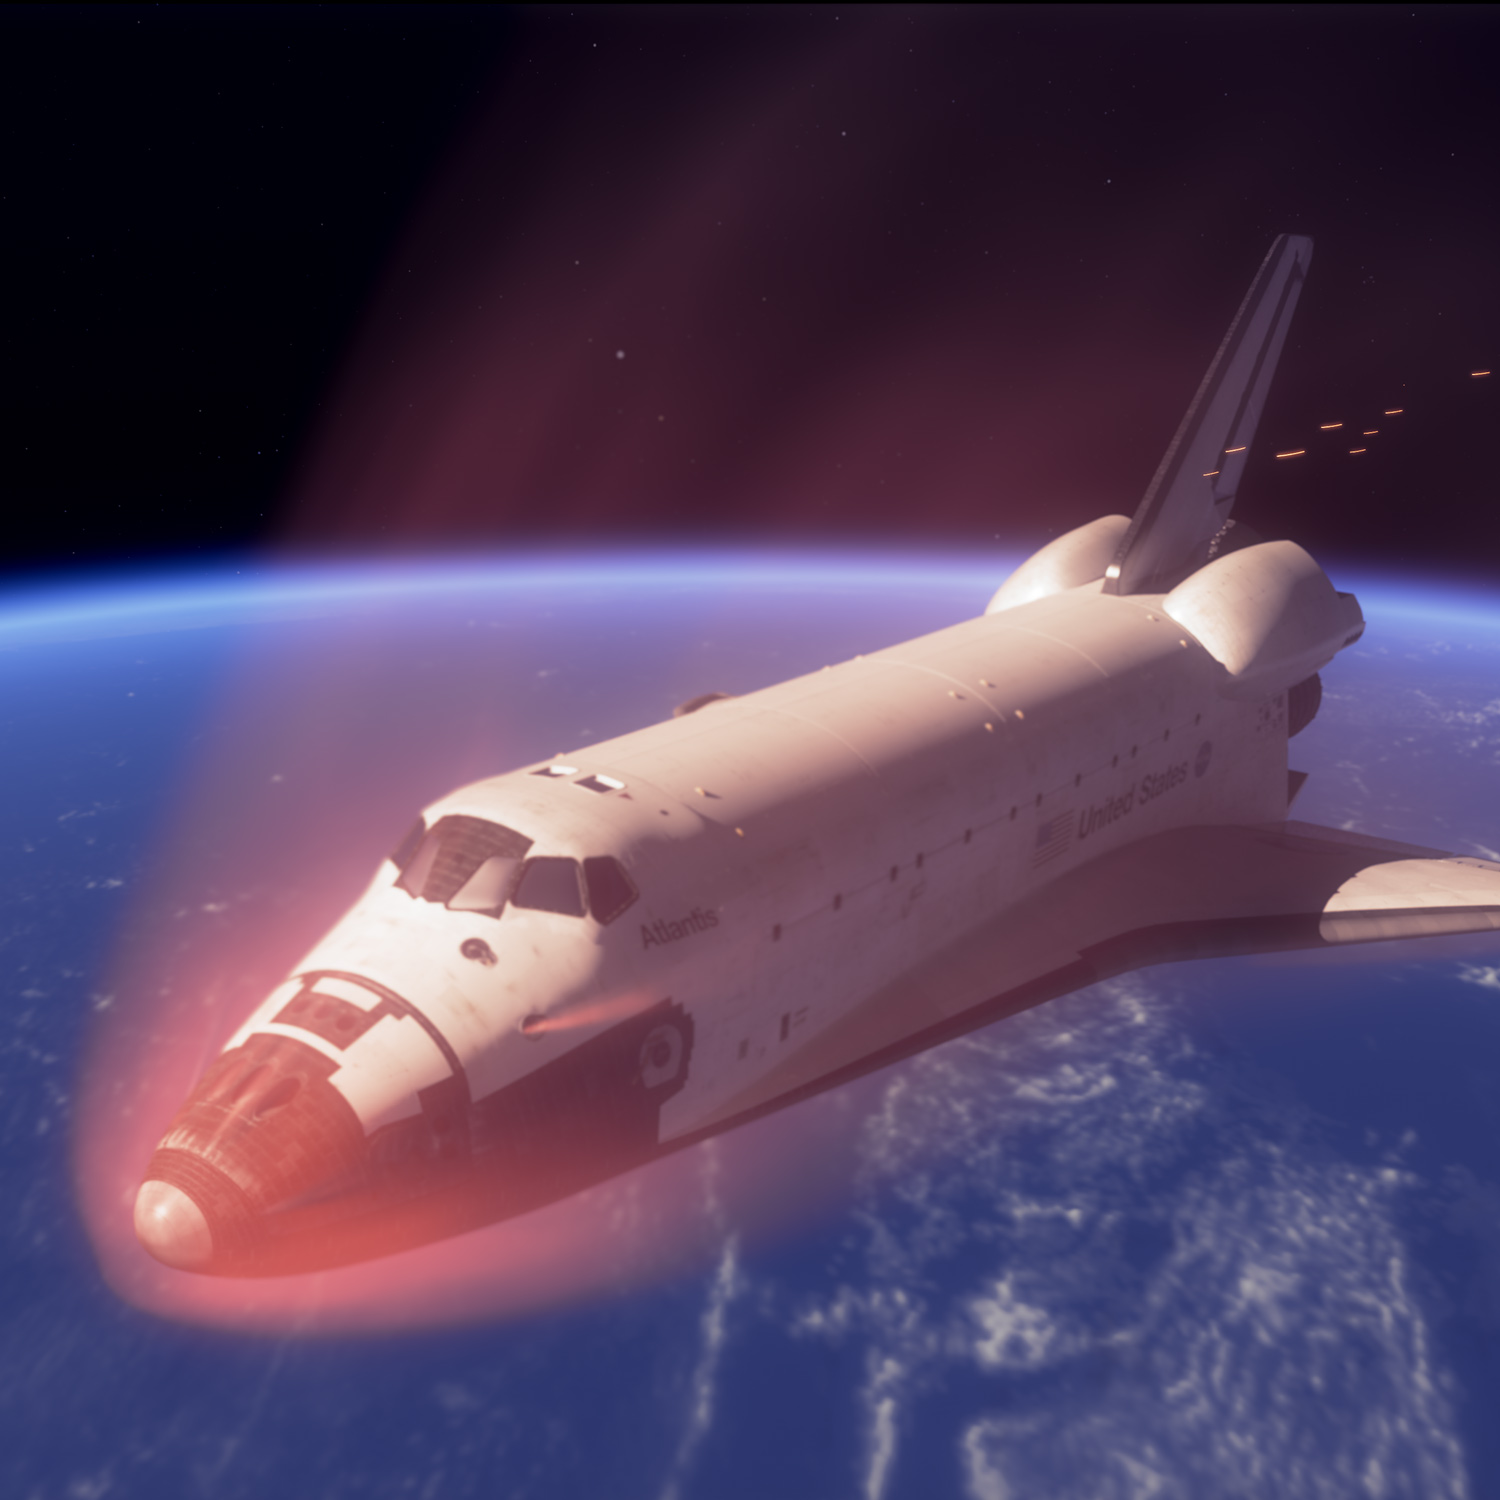 Aeroheating by reentry of Space Shuttle